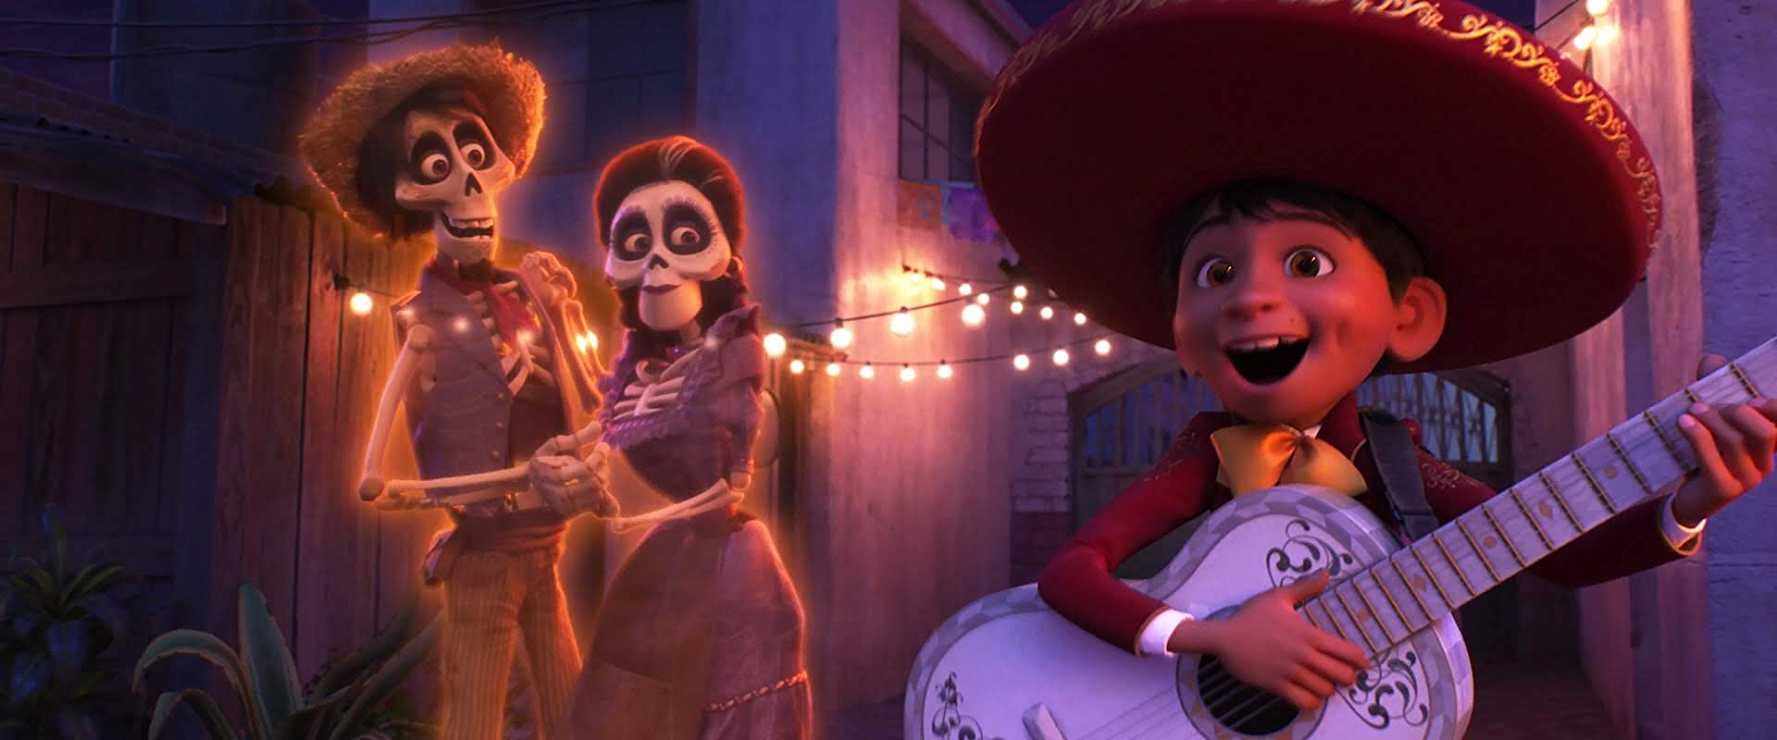 coco full movie download in hindi dubbed 720p